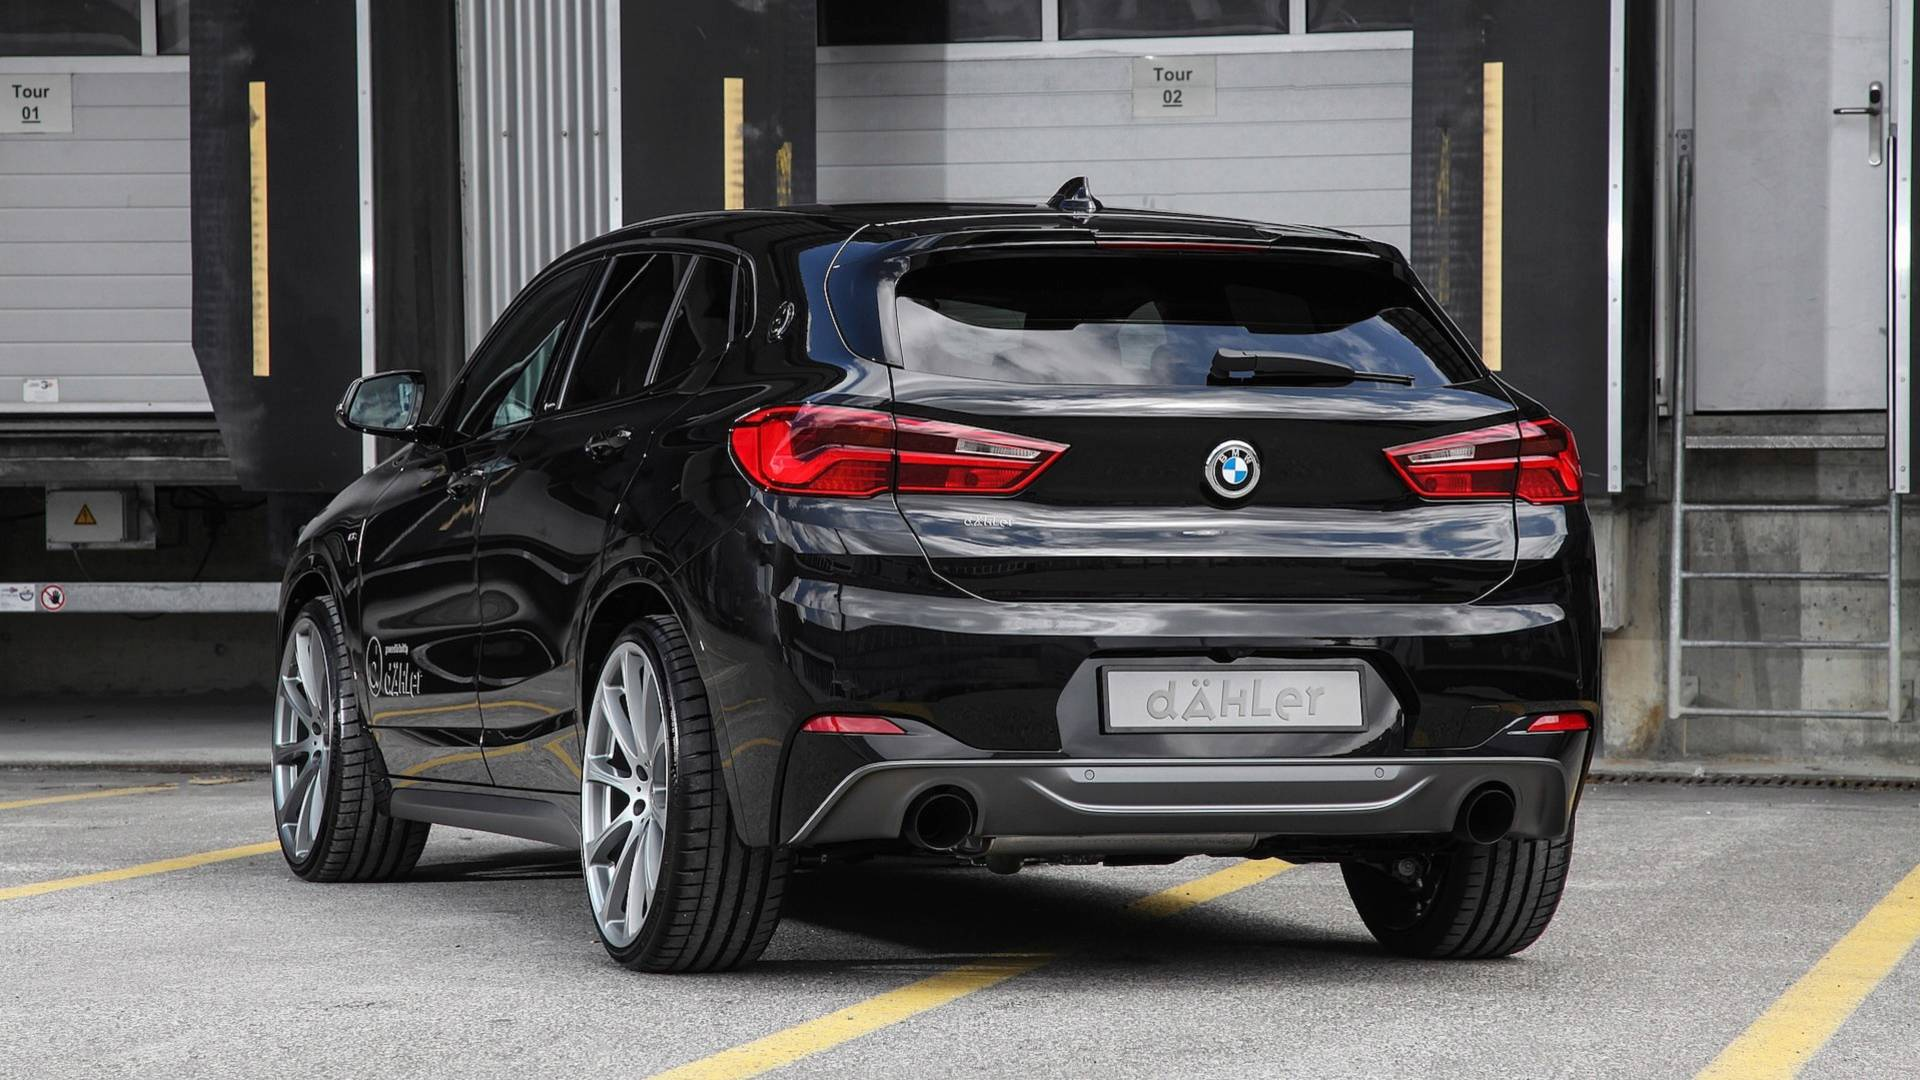 BMW X2 by Dahler (25)